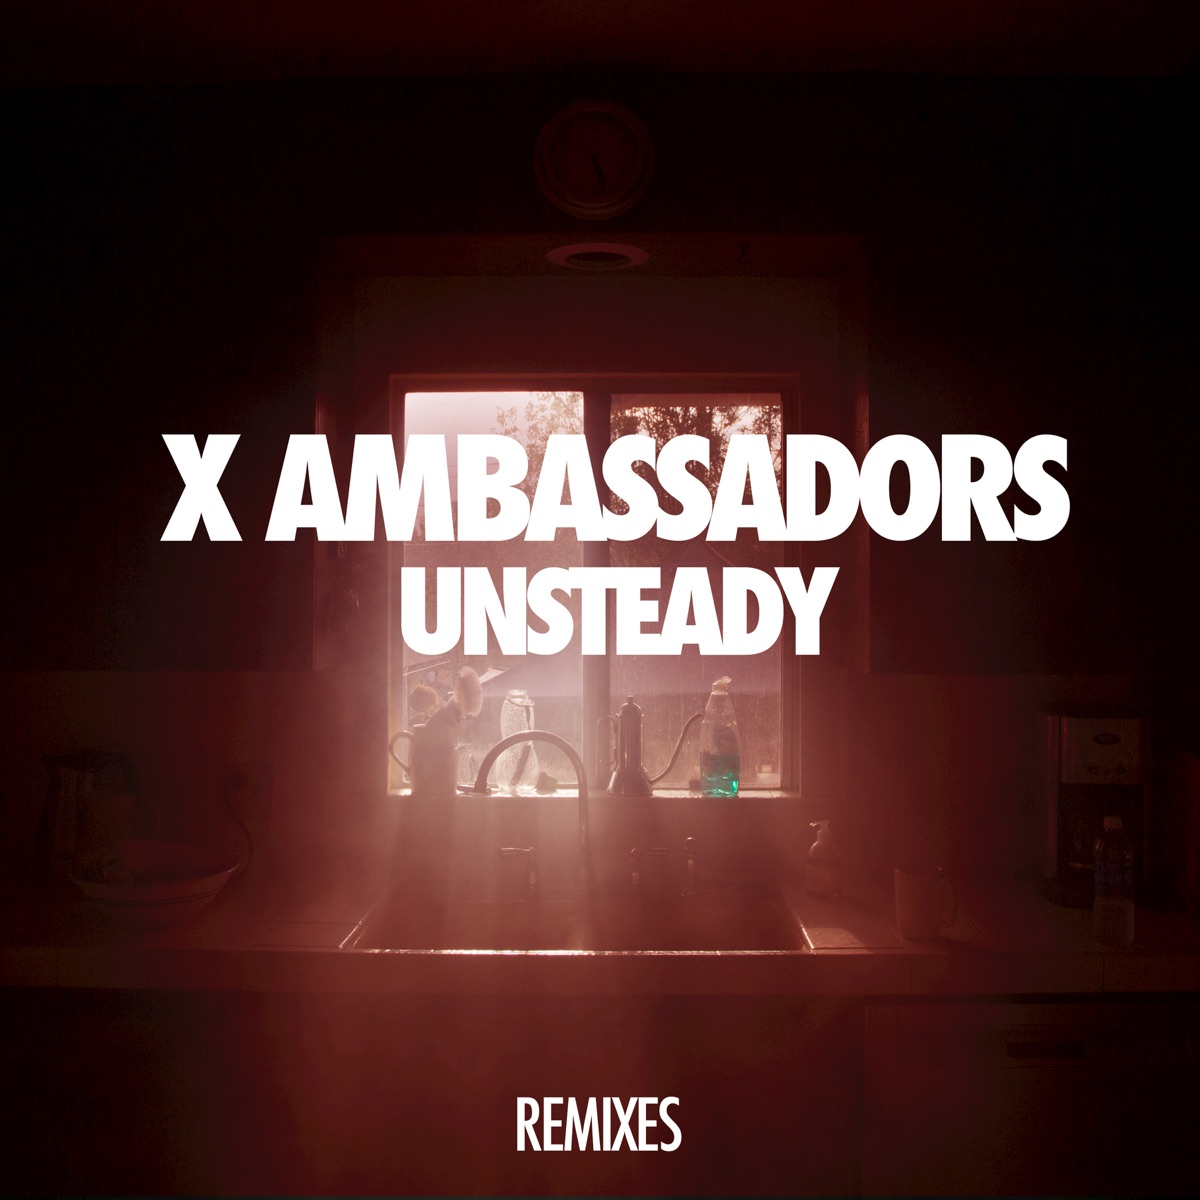 Unsteady Album Cover by X Ambassadors